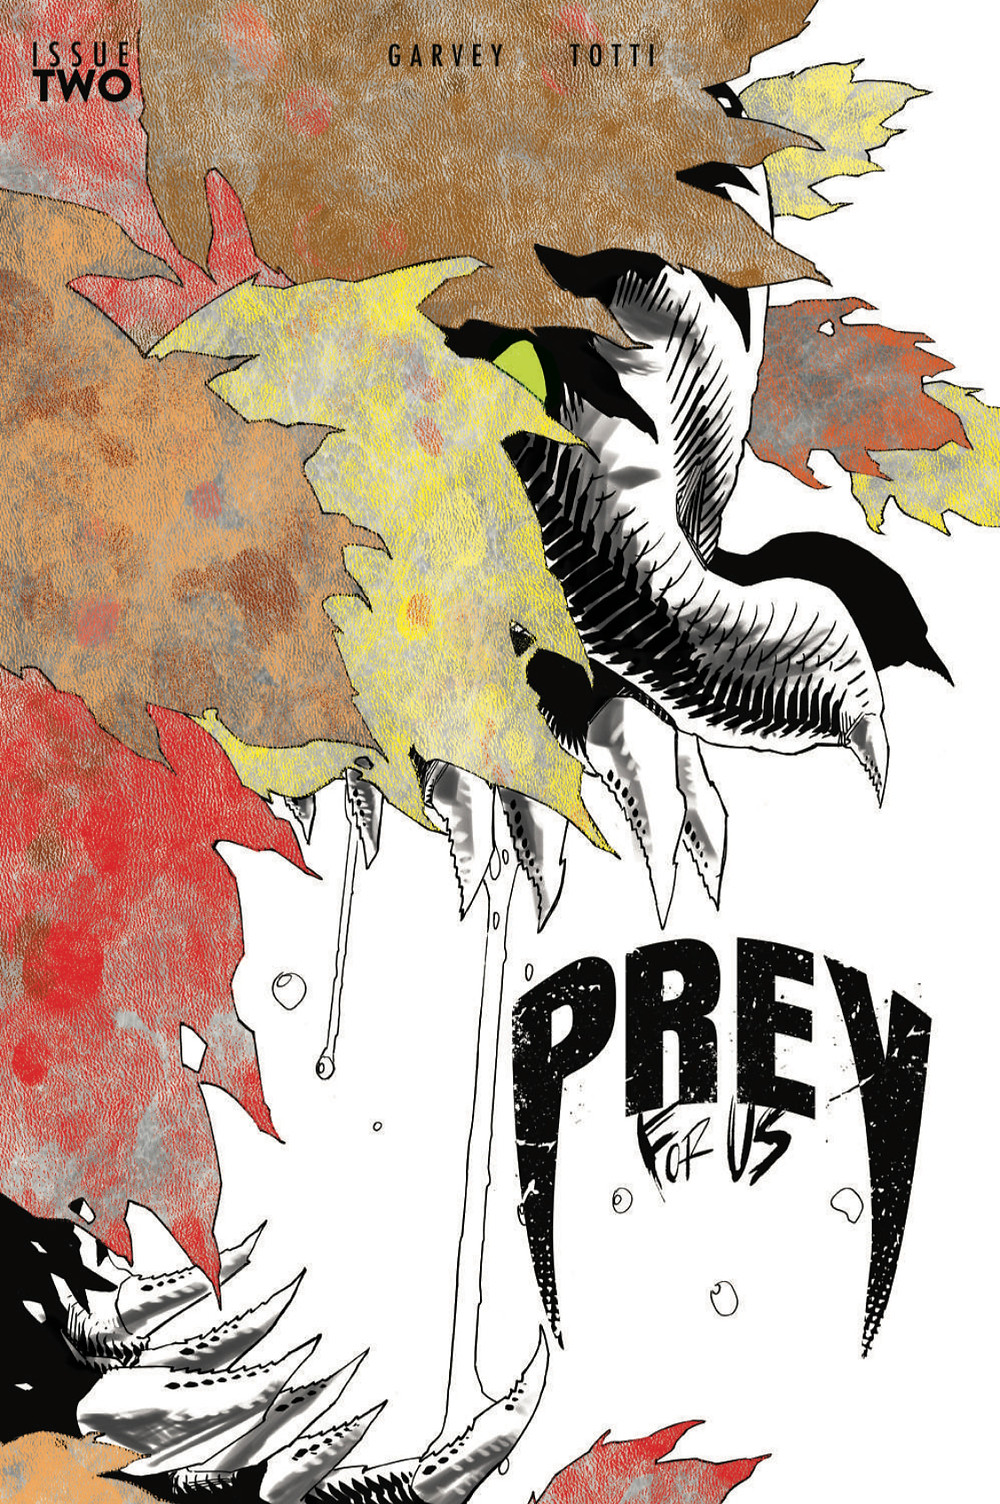 Prey For Us, issue #2, cover by John McCrea, self-published, Garvey/Totti